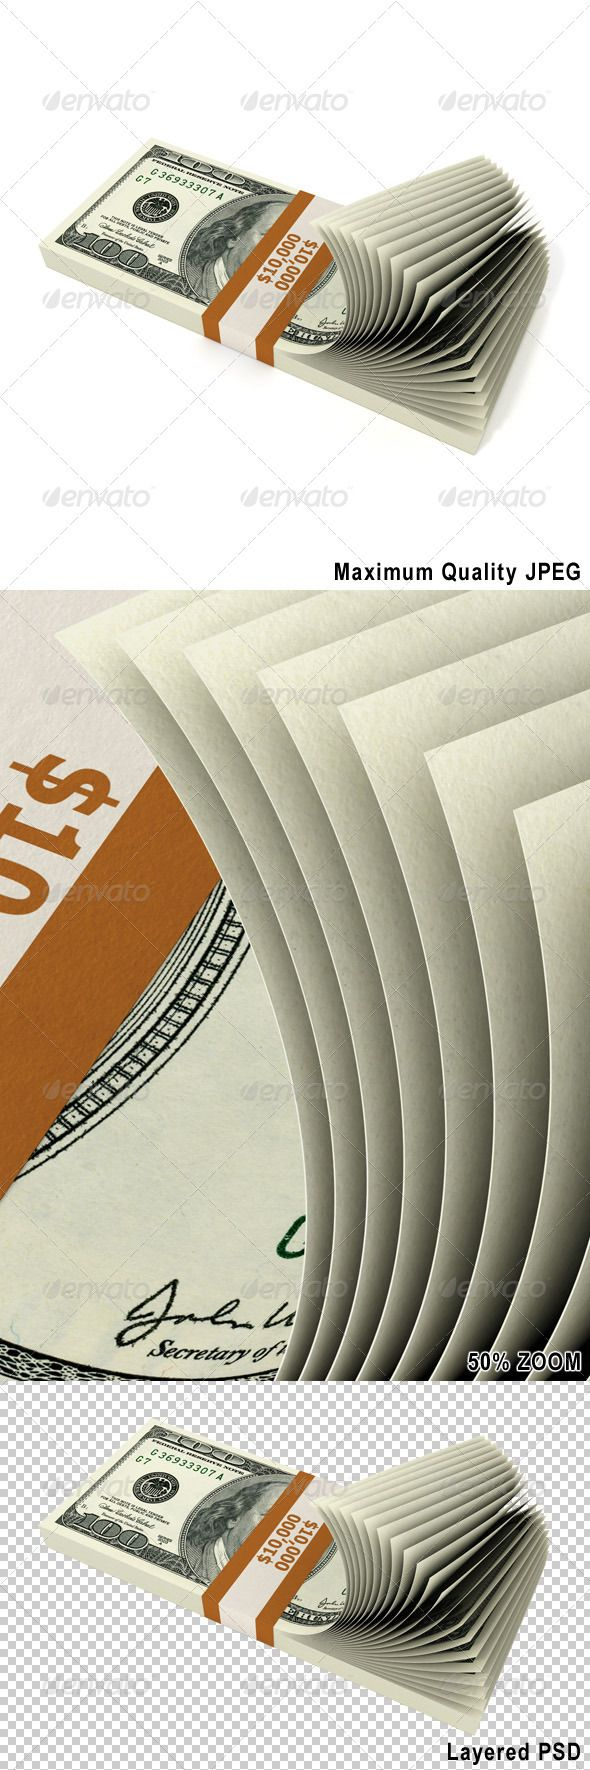 Stack of 10000 Dollars  #GraphicRiver         Stack of 10000 Dollars. Isolated on white. Included high quality JPEG and fully editable, layered PSD files.     Created: 3September12 GraphicsFilesIncluded: PhotoshopPSD #JPGImage HighResolution: No Layered: Yes MinimumAdobeCSVersion: CS PixelDimensions: 8000x5000 PrintDimensions: 26.6x16.6 Tags: 3d #bank #business #cash #coin #concepts #credit #currency #debt #dollars #finance #green #heap #investment #loan #million #money #render #savings…